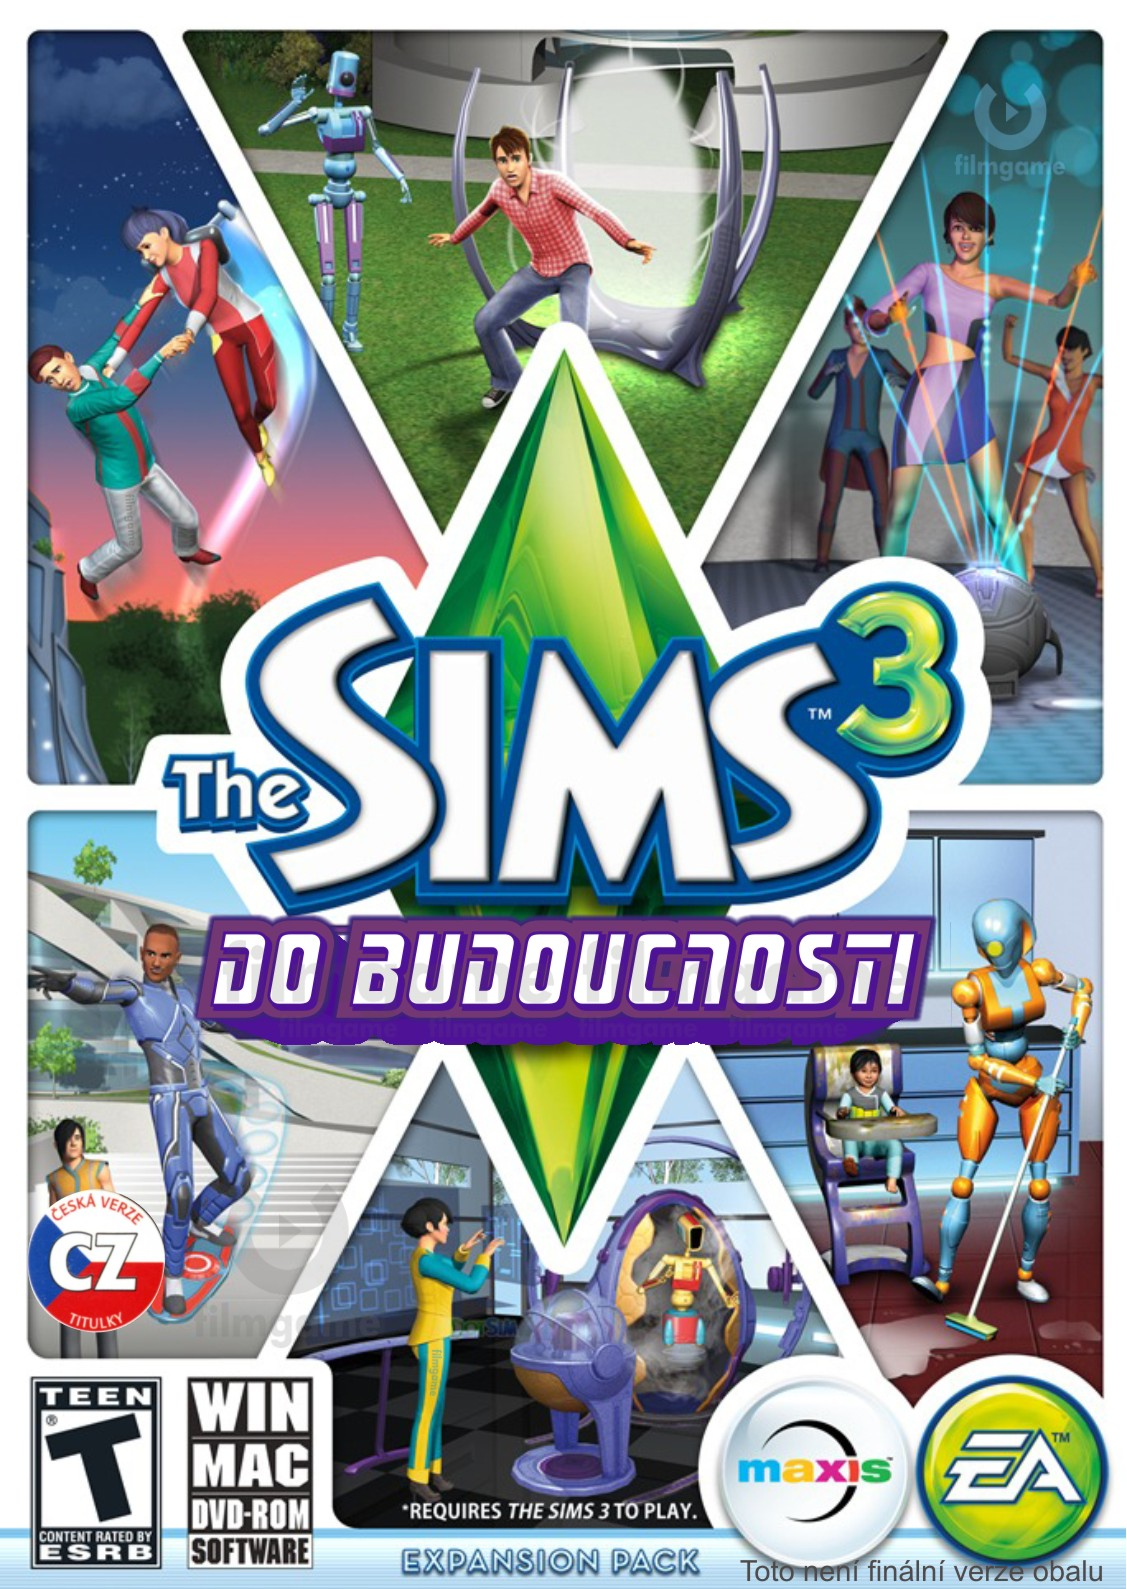 THE SIMS 3: DO BUDOUCNOSTI - PC